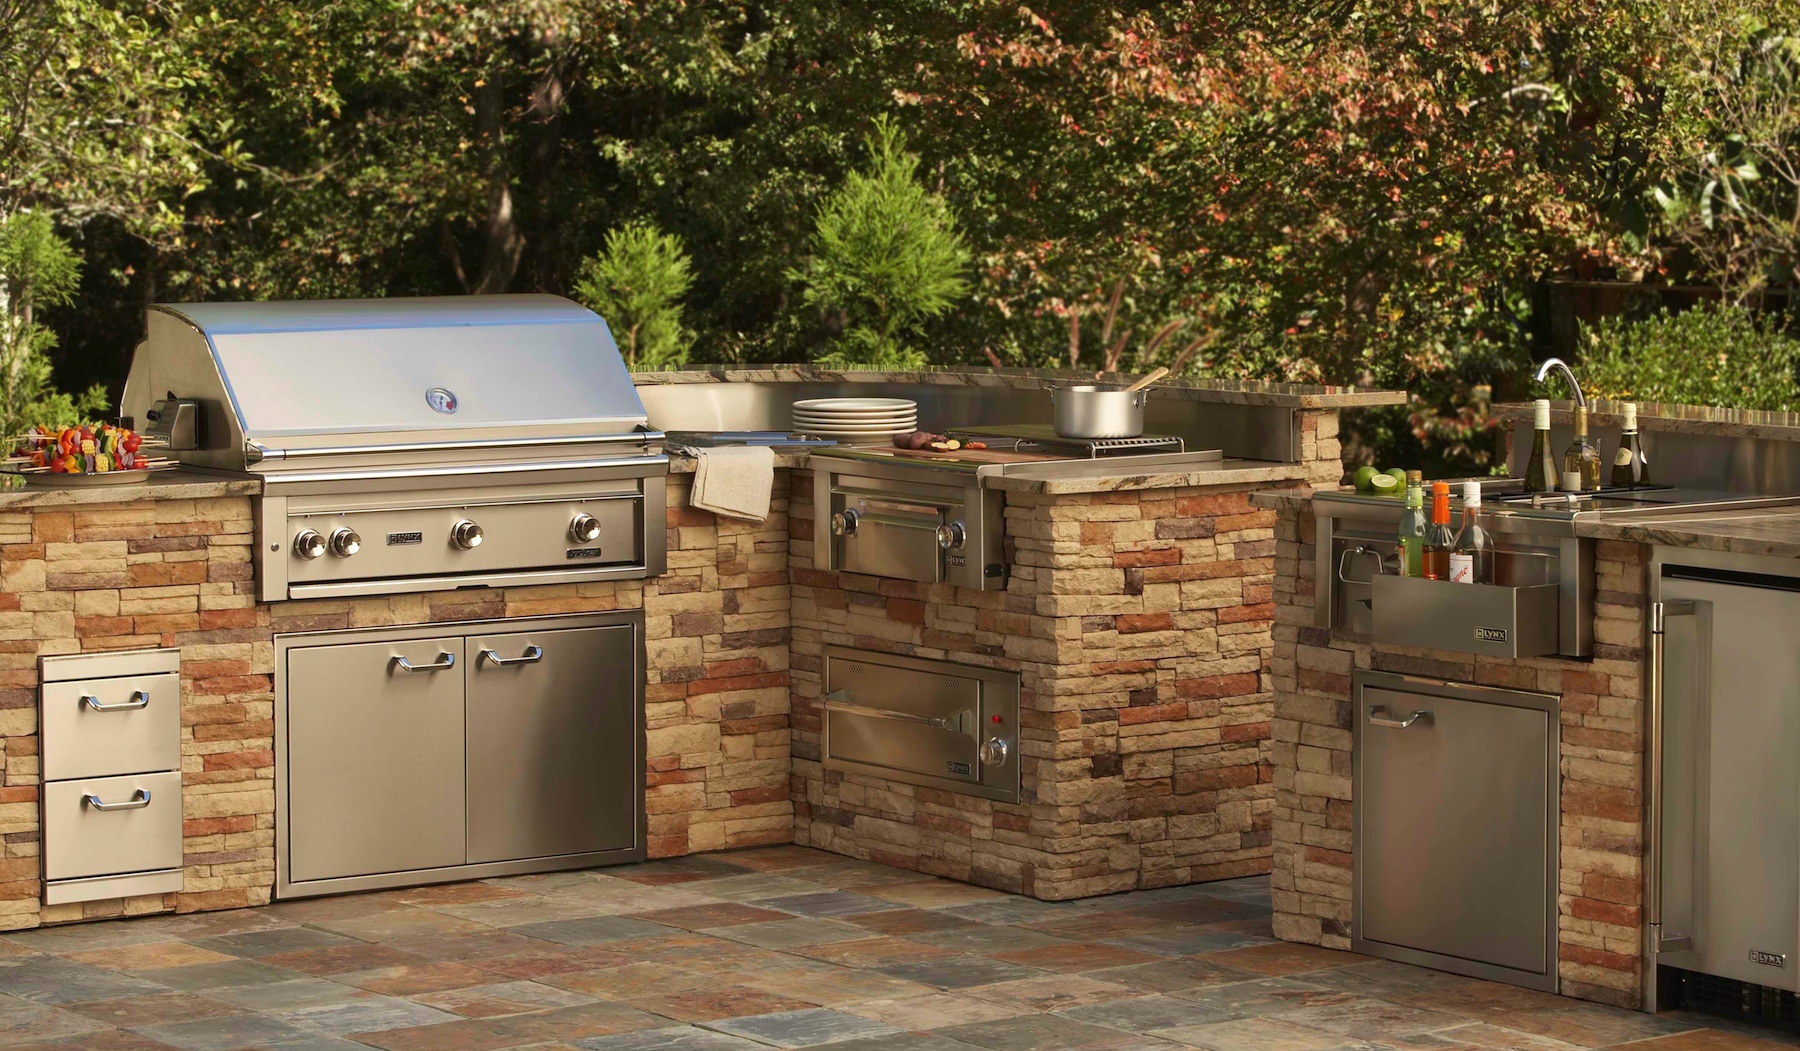 Choosing a Professional Barbecue Grill for your Outdoor Kitchen ...